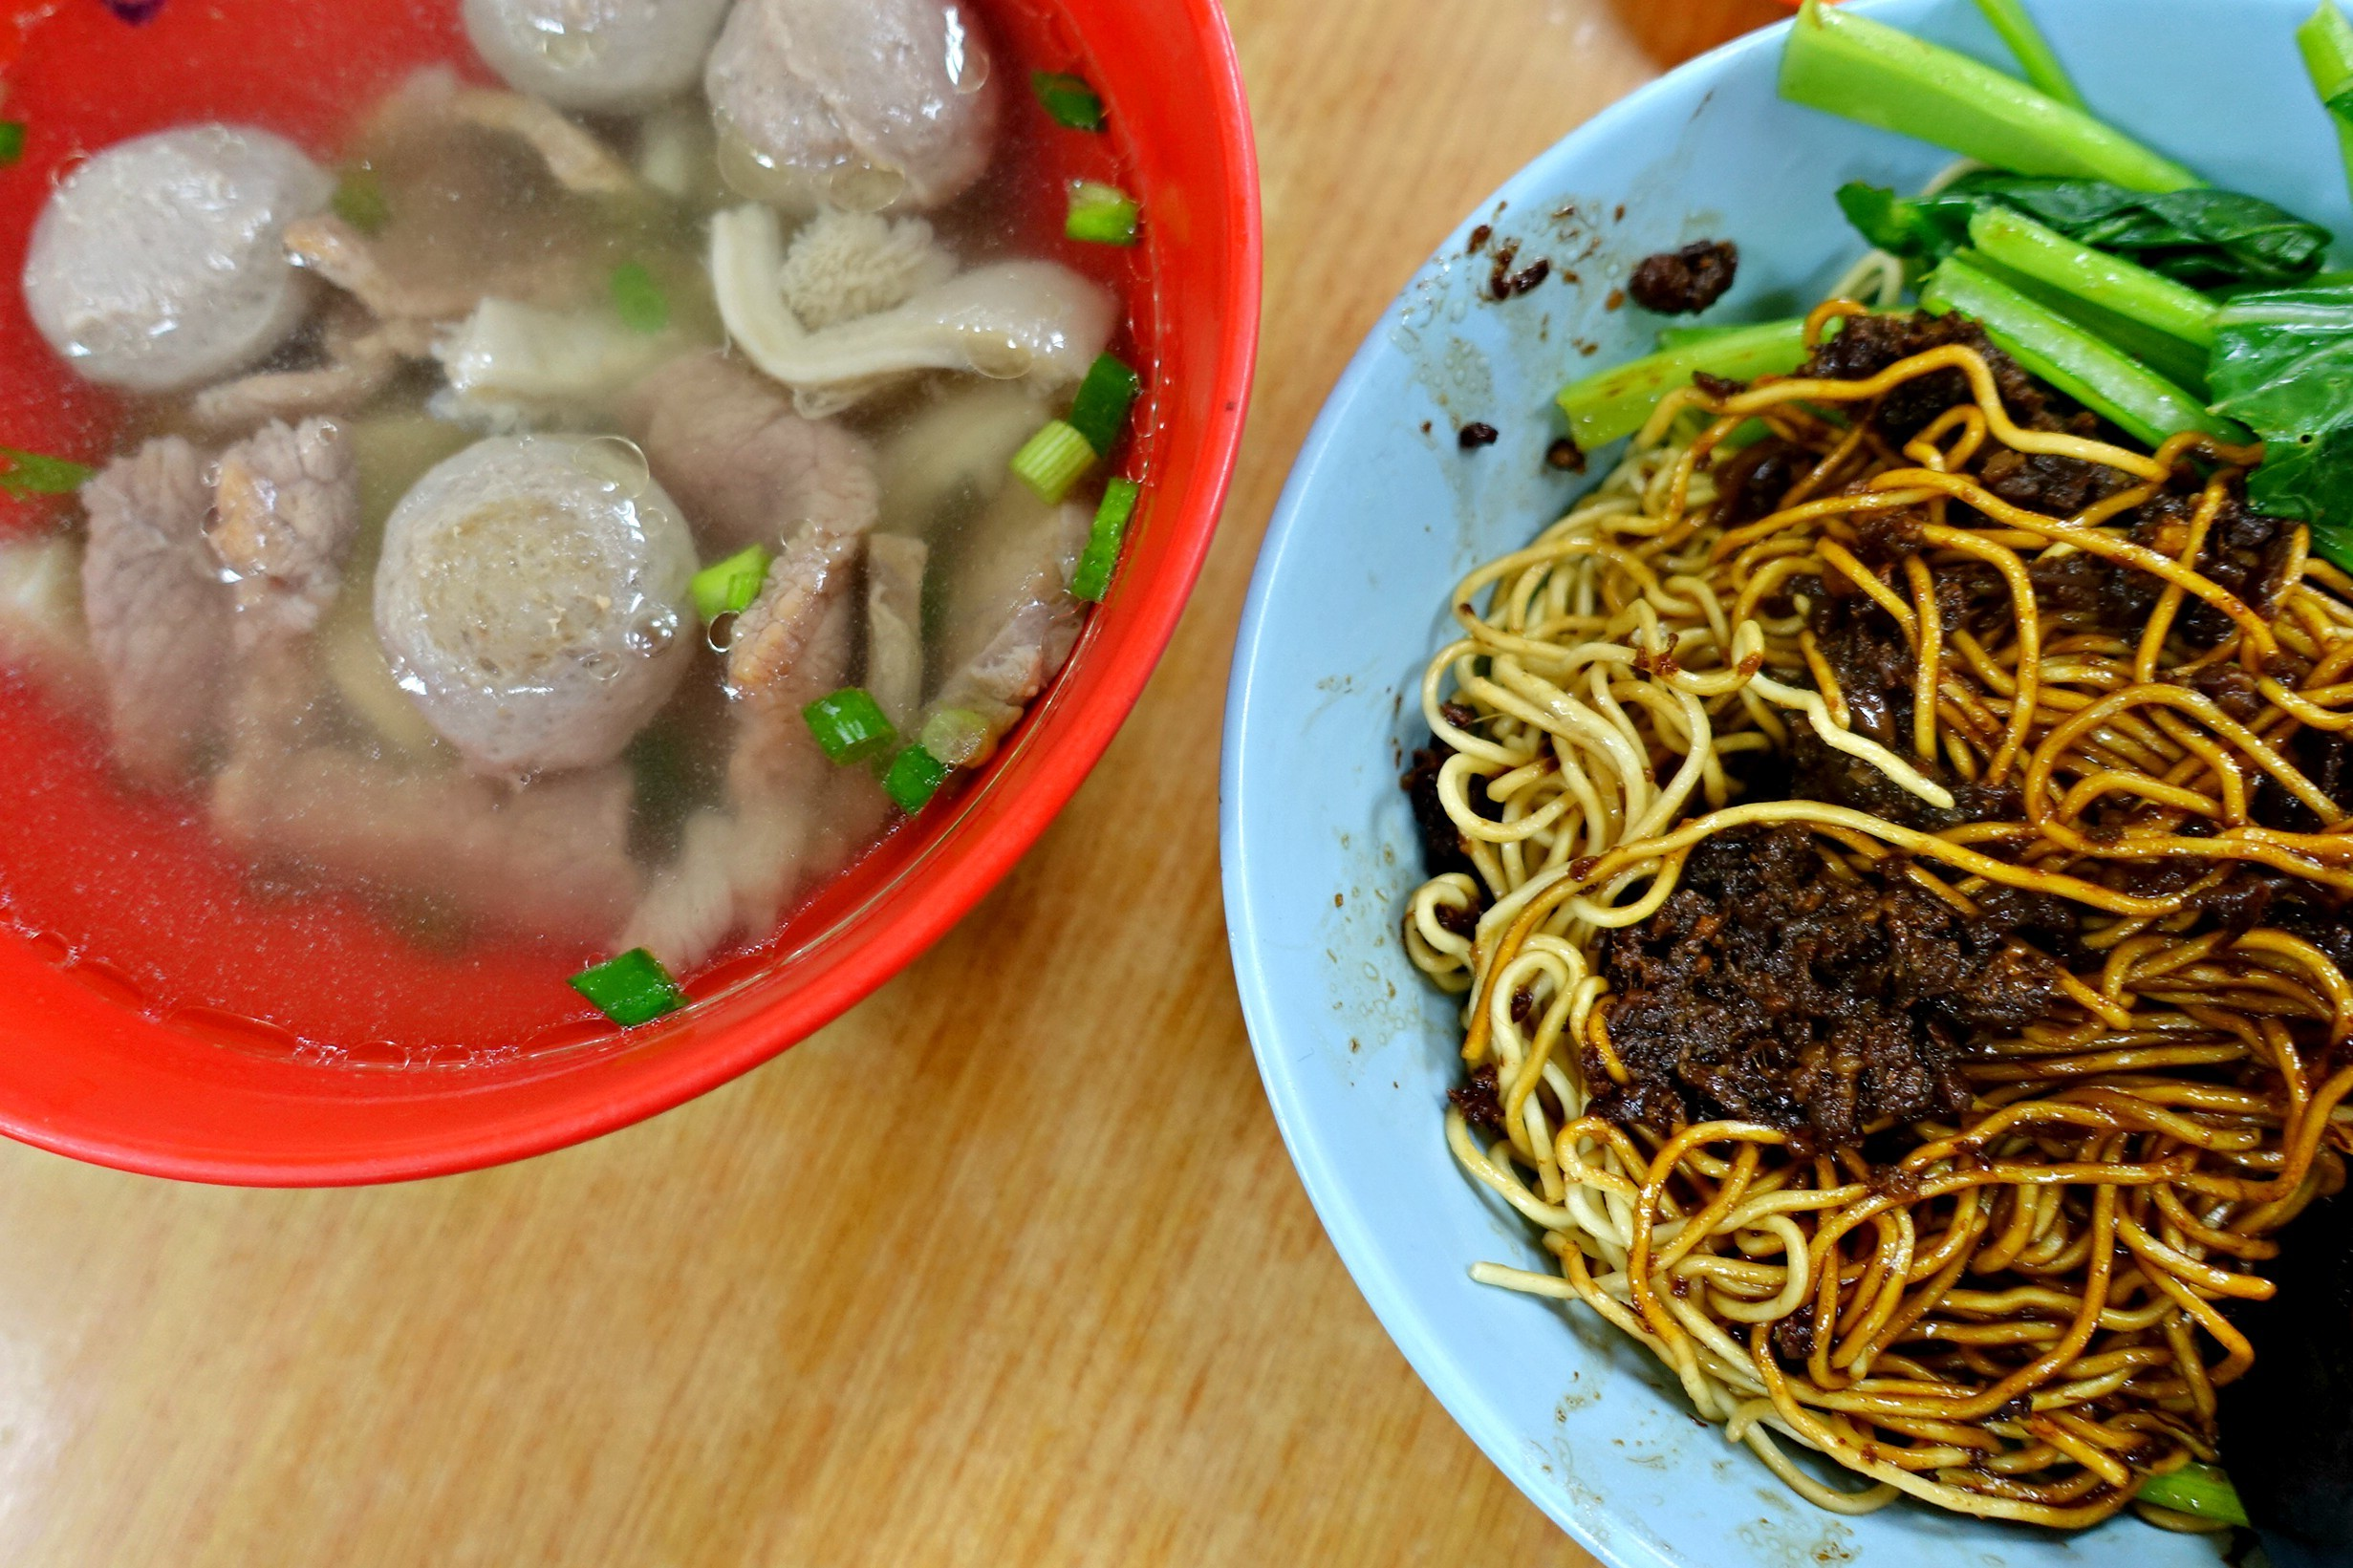 Kuala Lumpur] Soong Kee Beef Noodles (颂记牛肉丸粉) at Jalan Tun HS Lee - Asia  Pacific - Hungry Onion